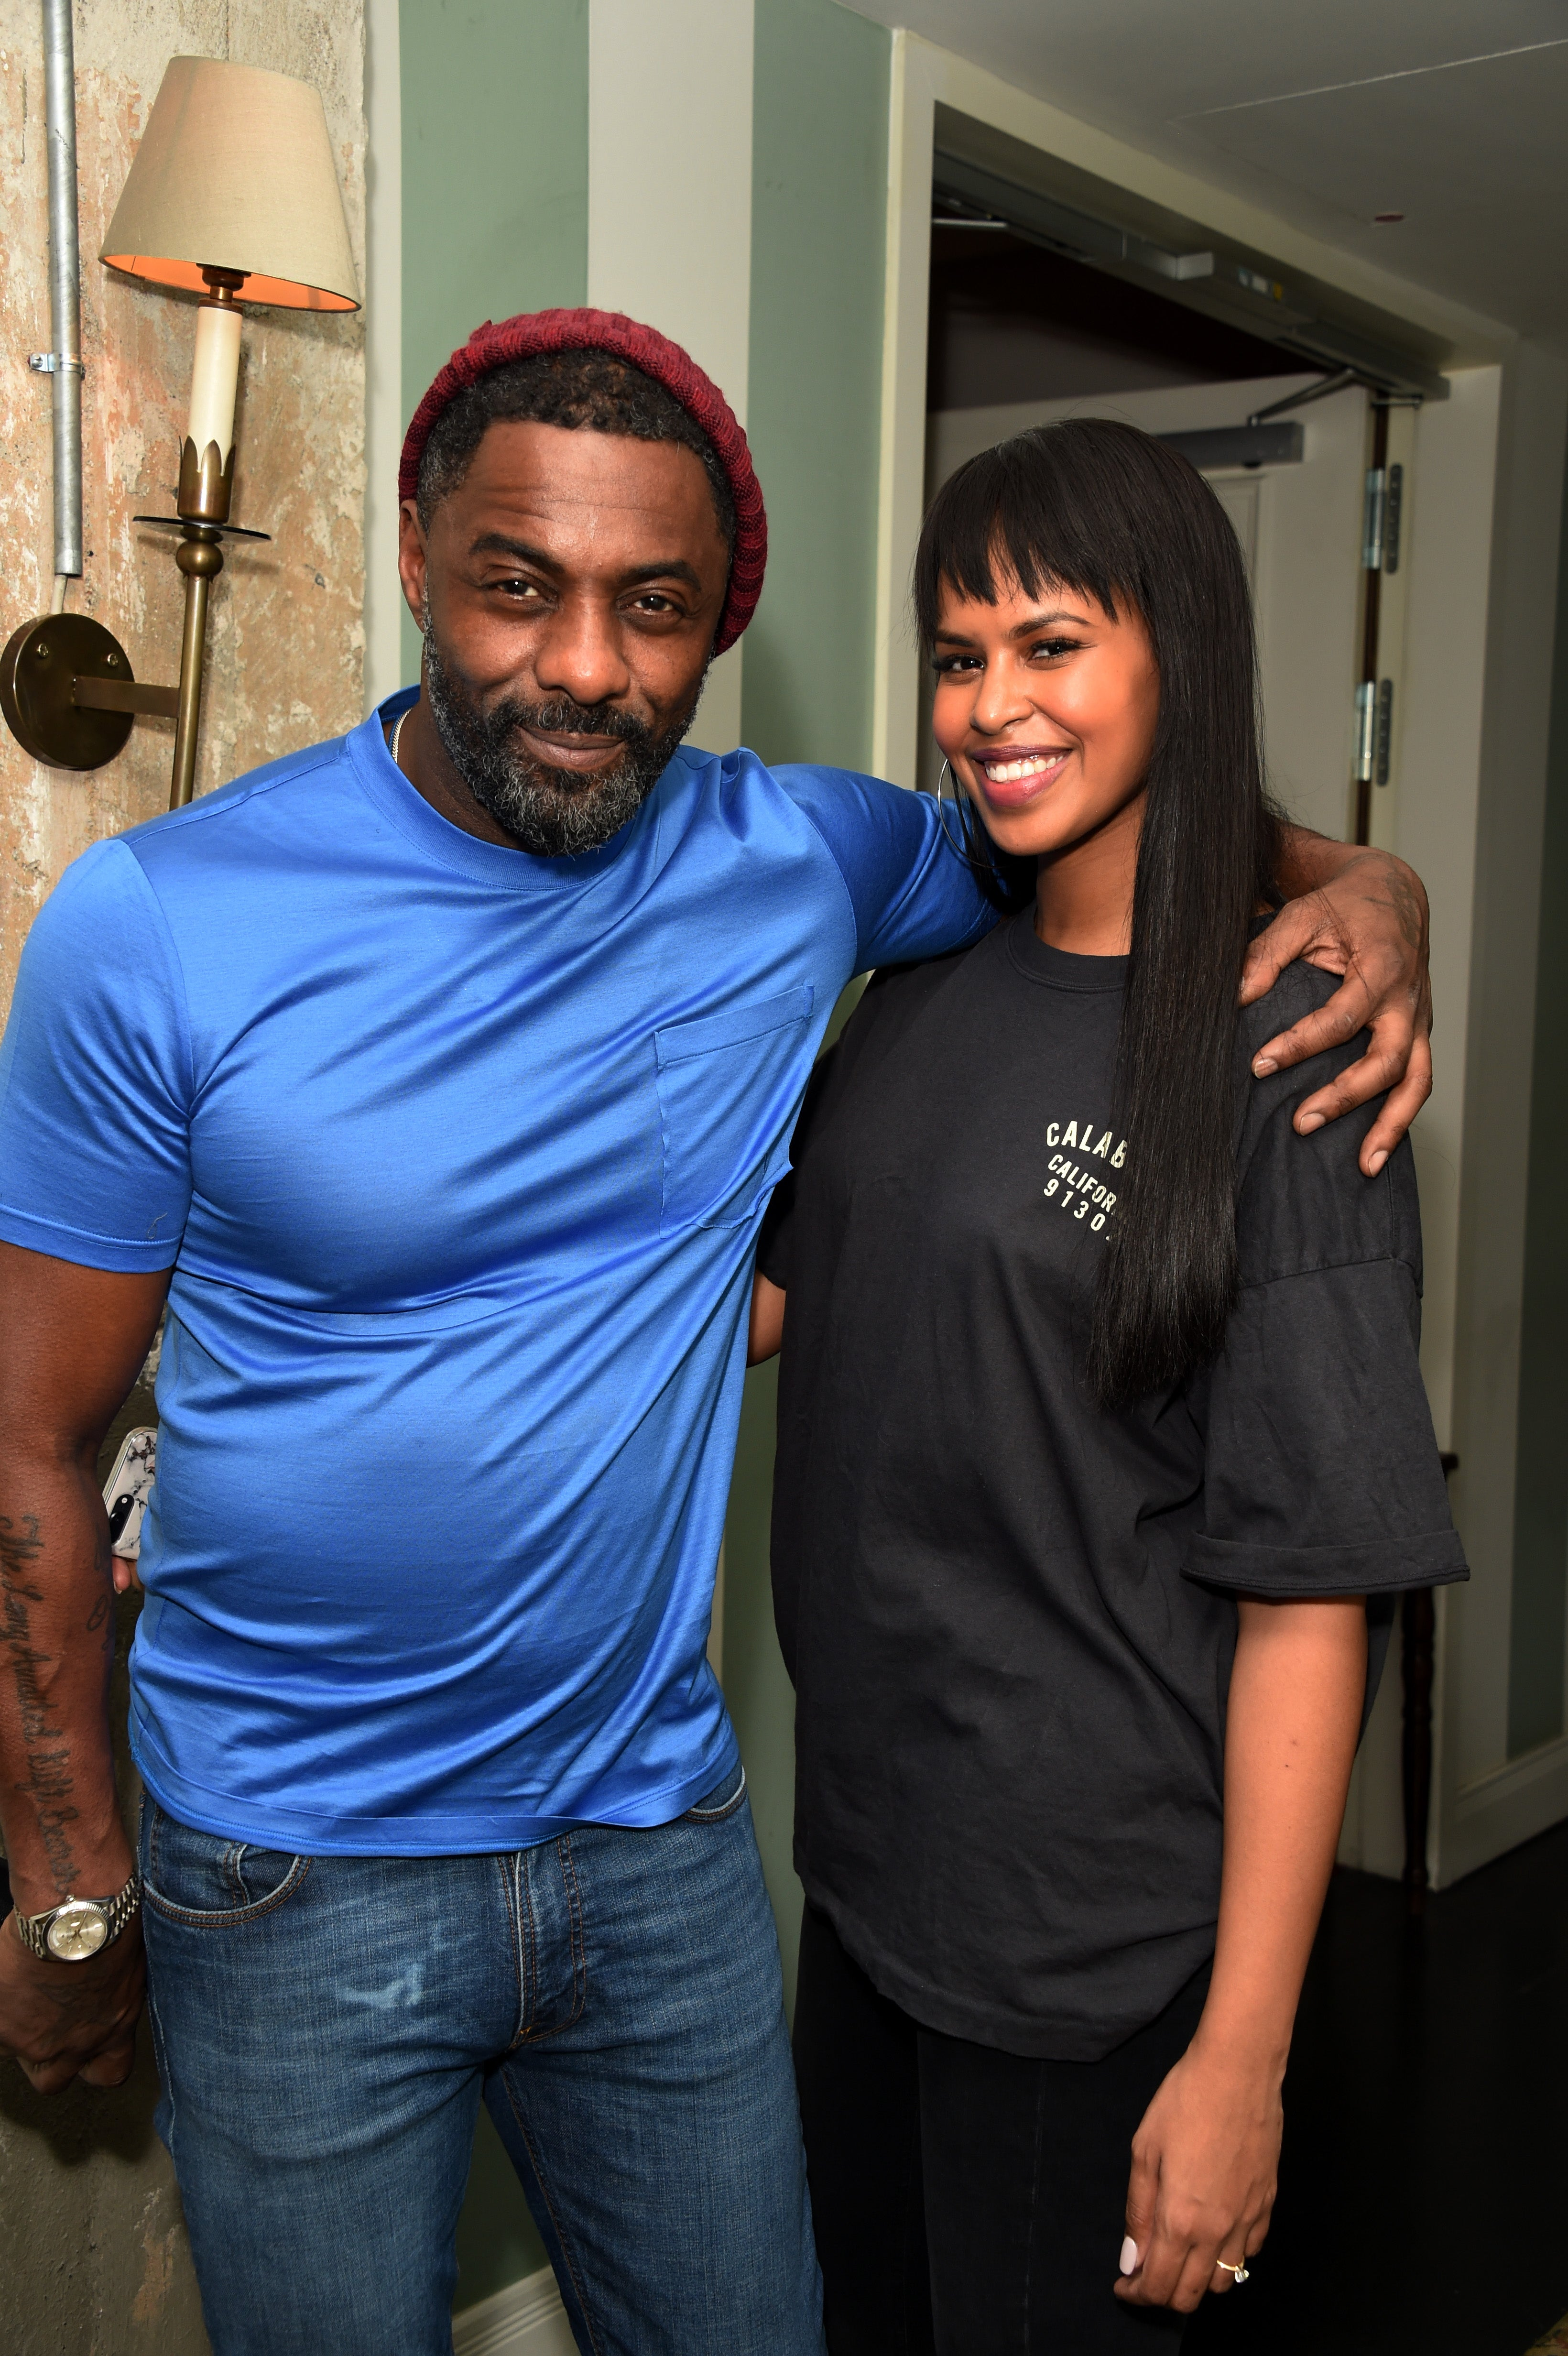 Idris Elba Fiance: Idris Elba And Fiancée Sabrina Dhowre's Love In Pictures